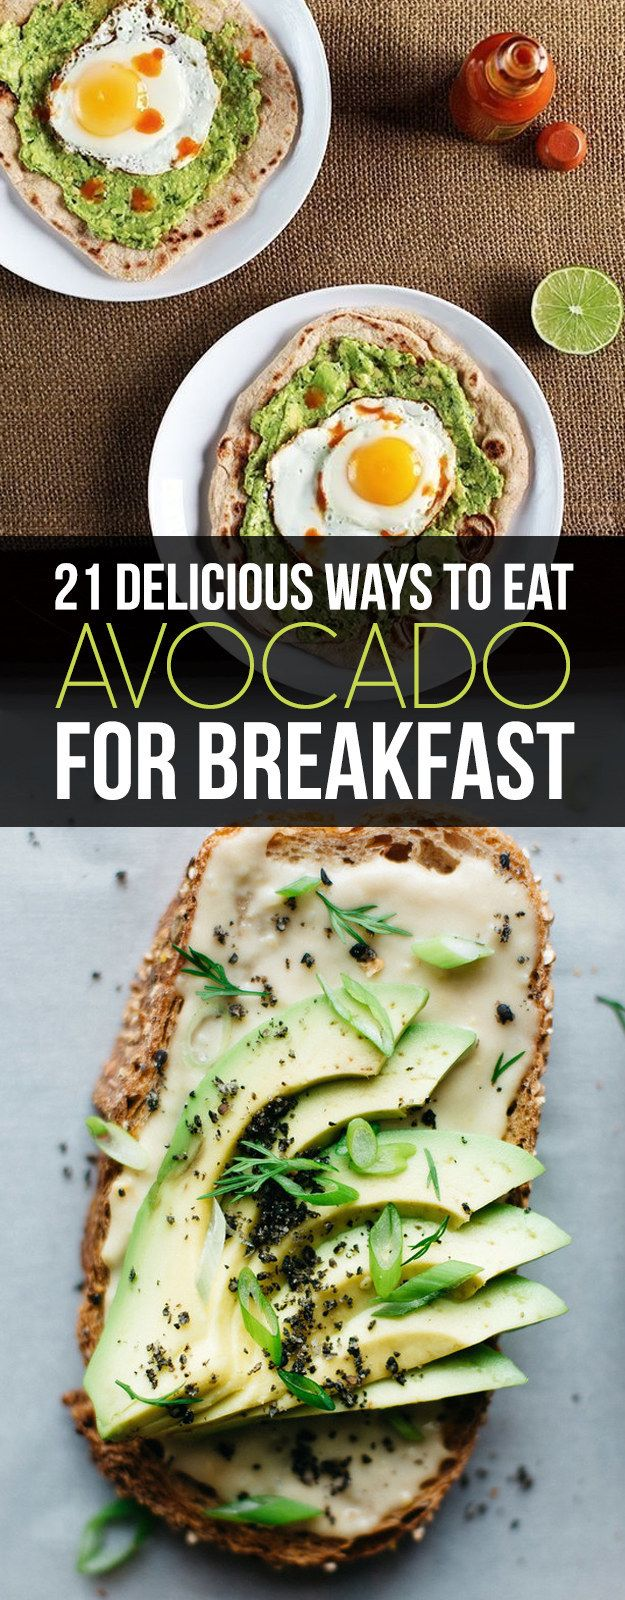 21 Delicious Ways To Eat Avocado